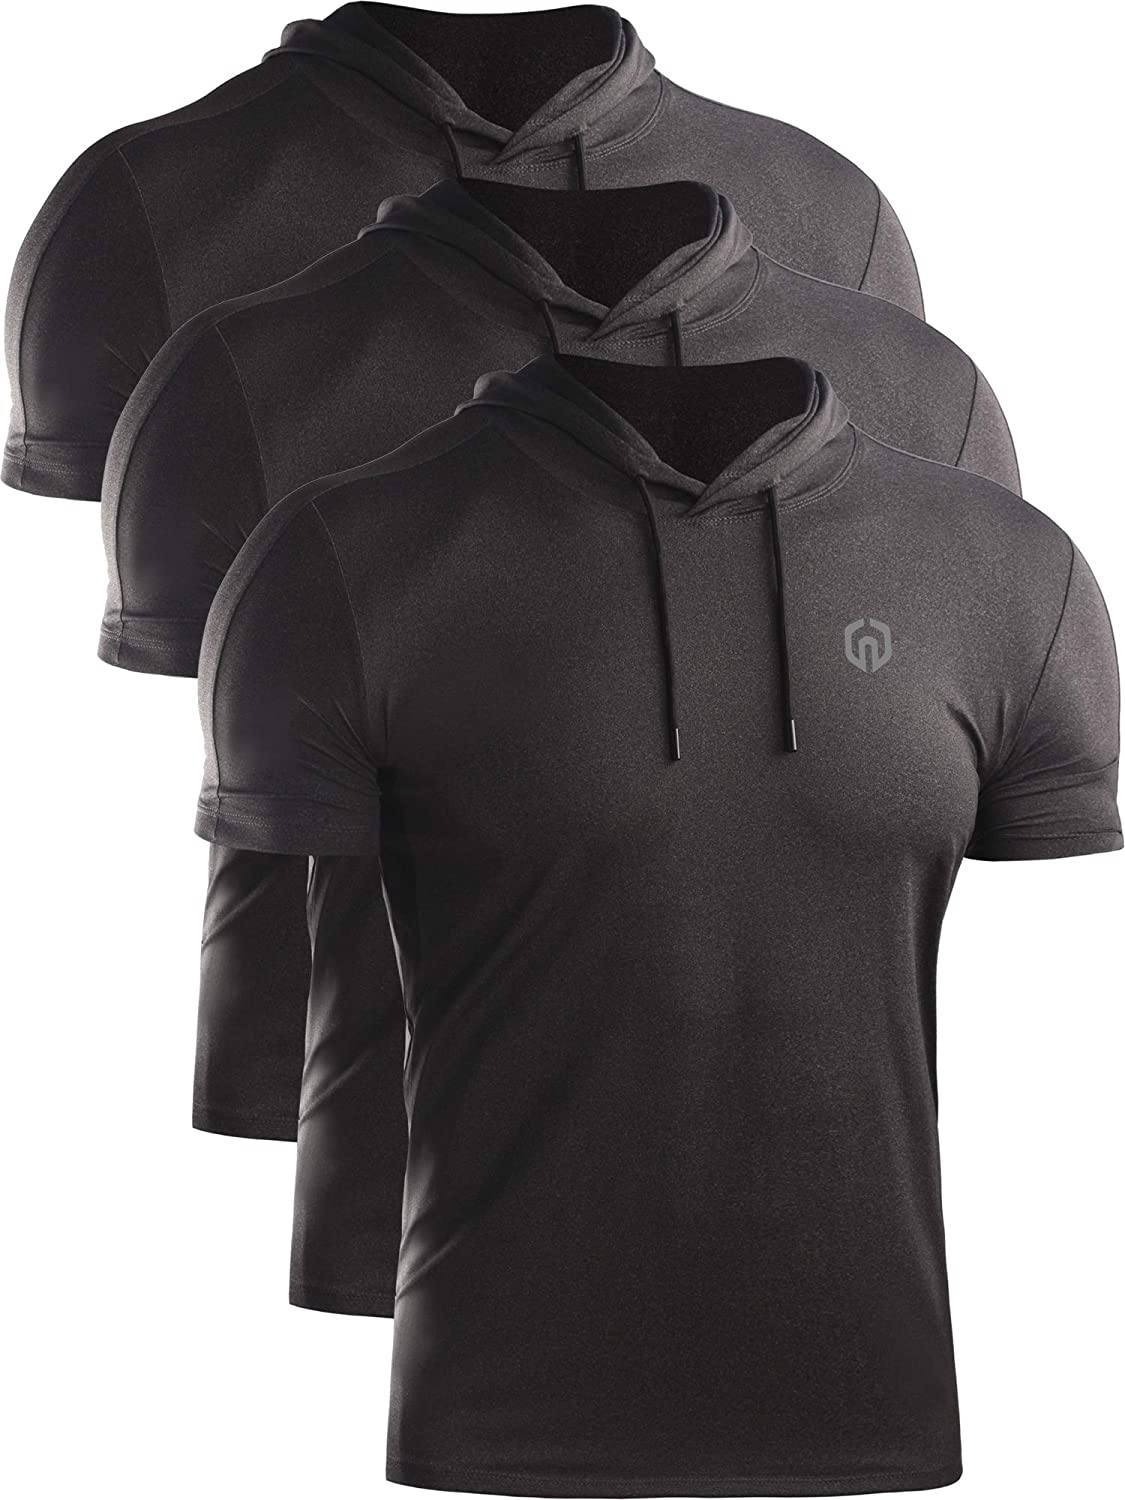 Neleus Mens Dry Fit Performance Athletic Shirt with Hoods